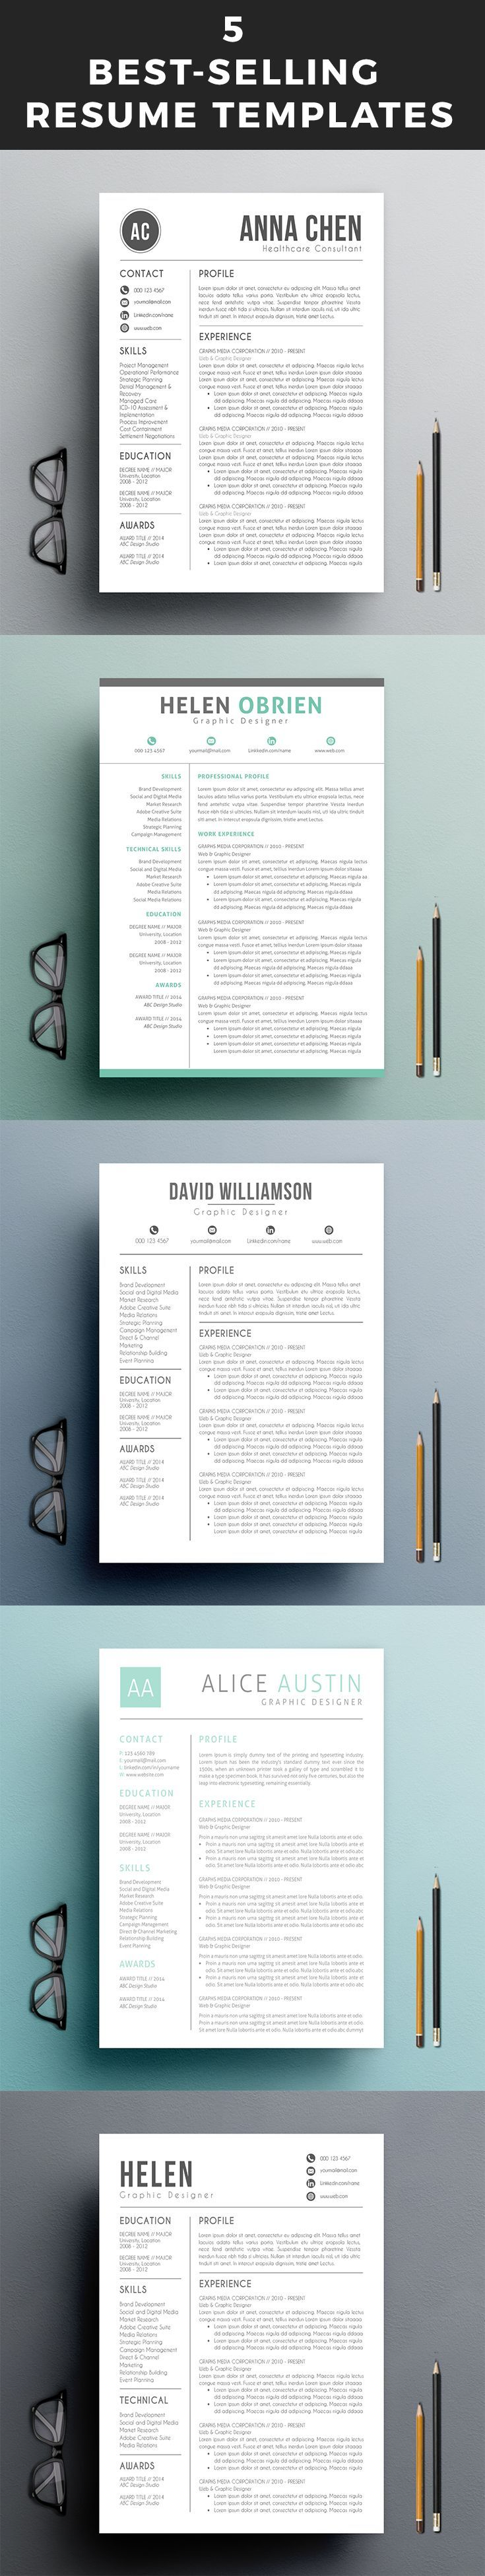 5 Best-Selling Resume Templates